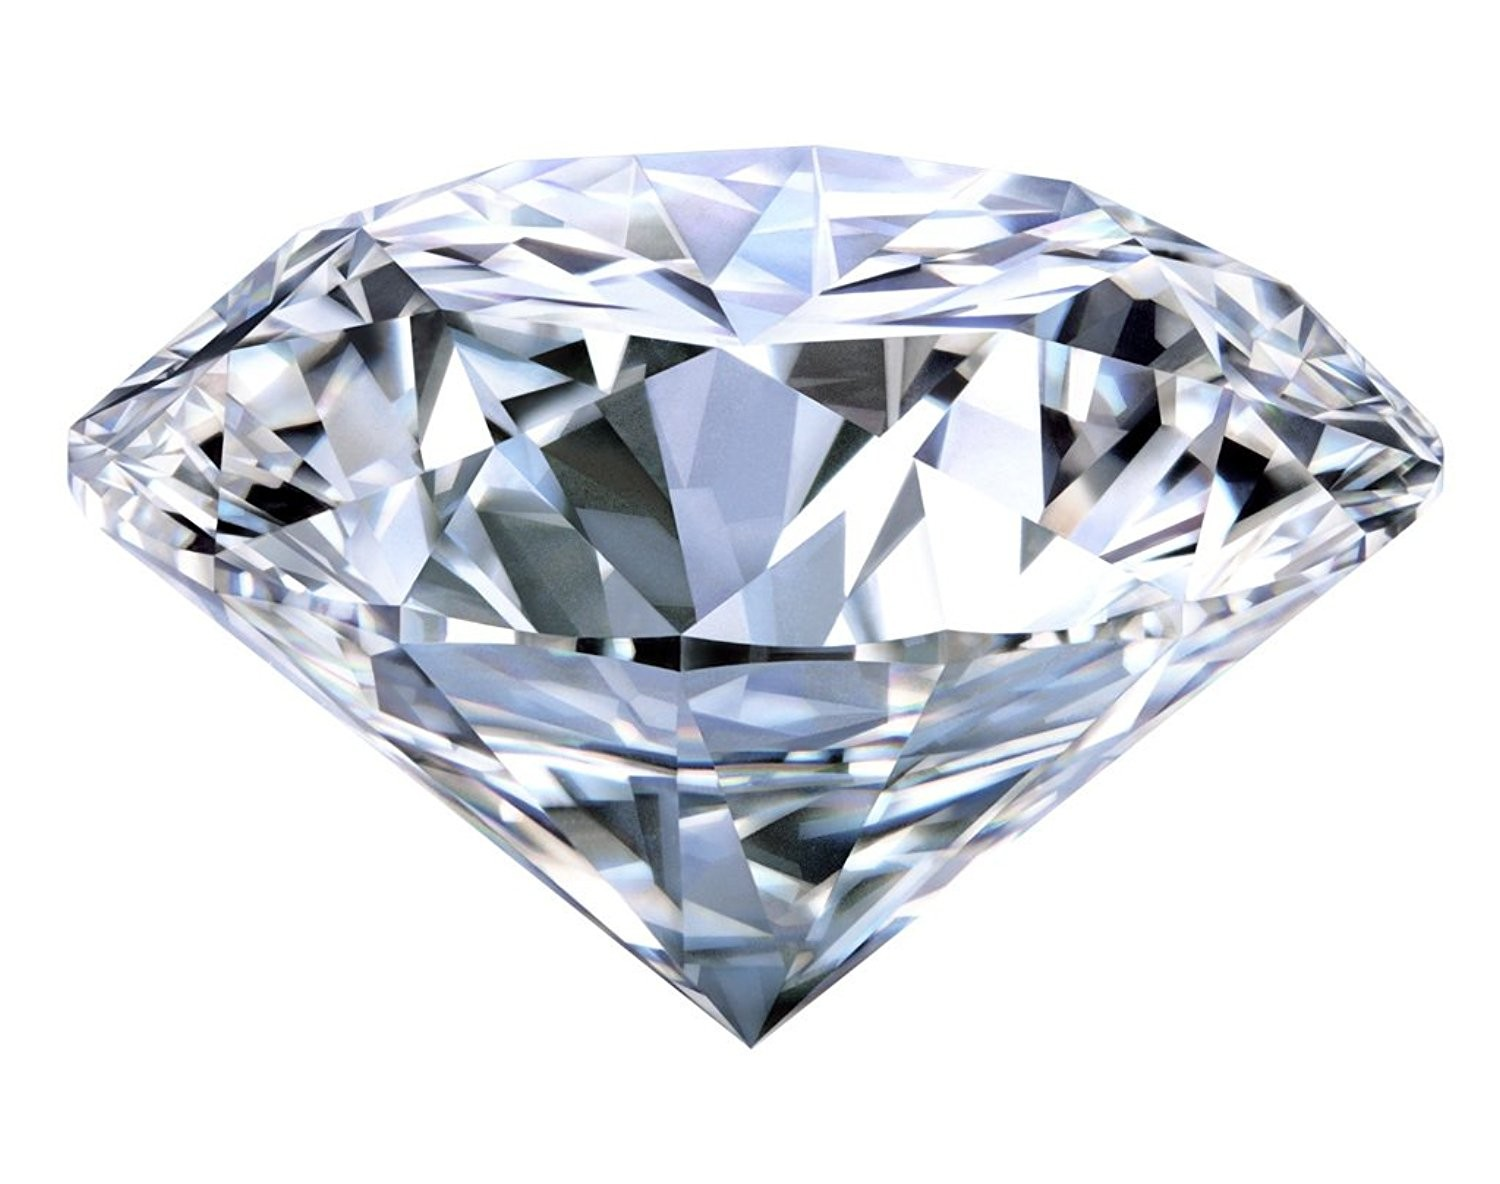 Diamond and Gemstone Market Significant Demand Foreseen with Harry Winston, Graff, Hearts On Fire, CARTIER International